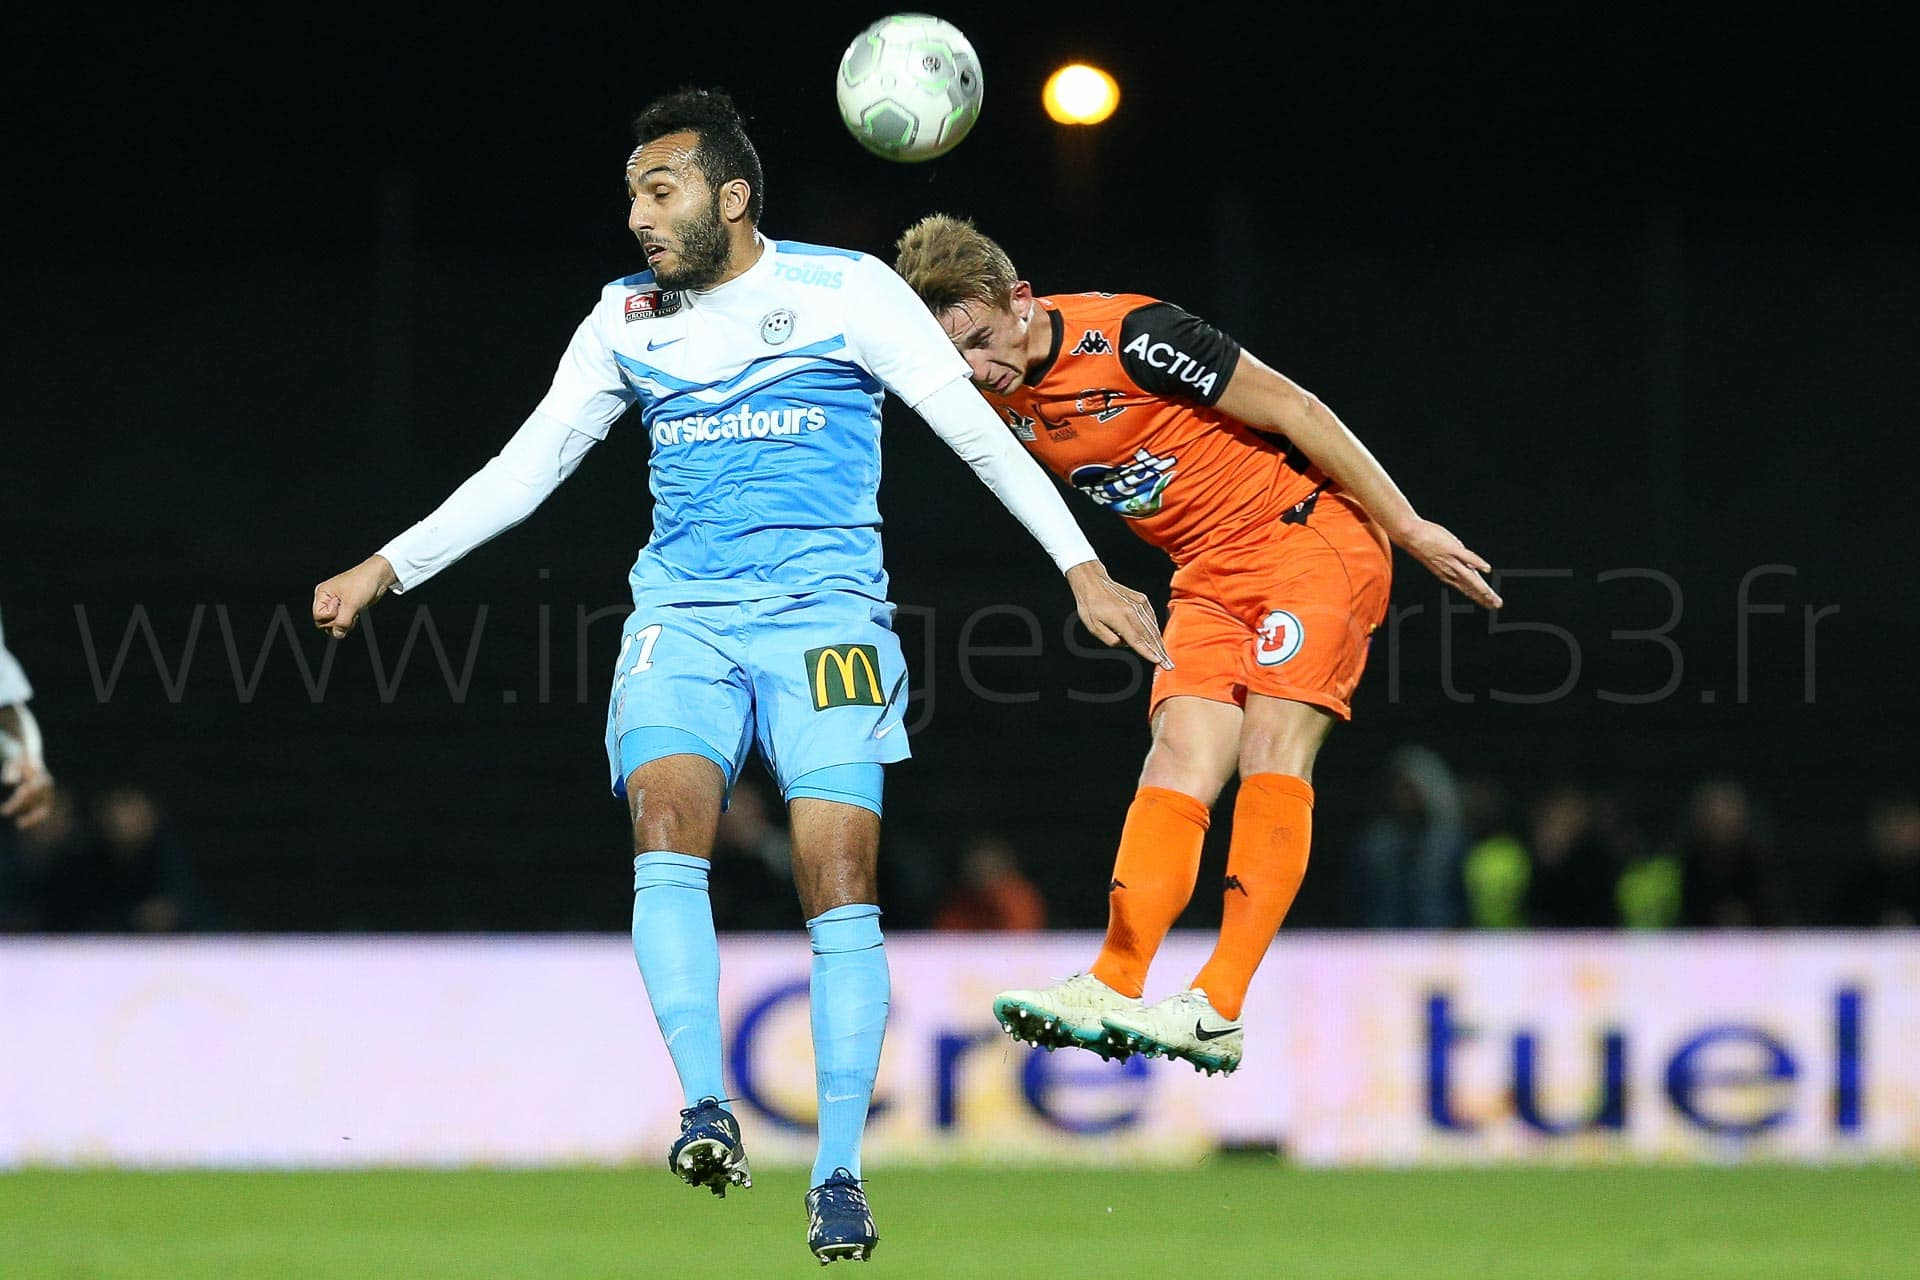 Youssef ADNANE (Tours FC), Kevin PERROT (Stade Lavallois)